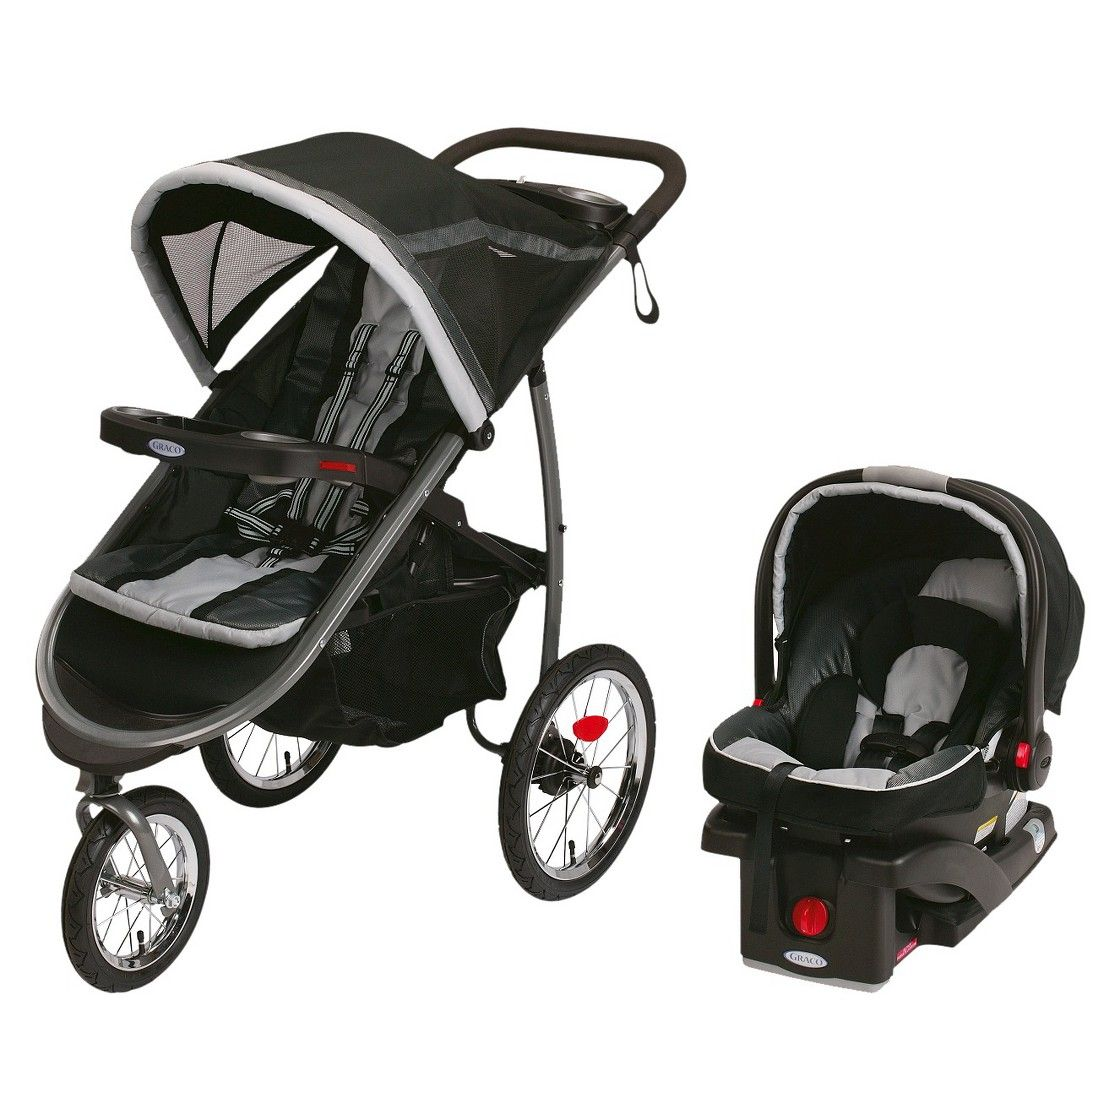 Graco FastAction Jogger Click Connect Travel System